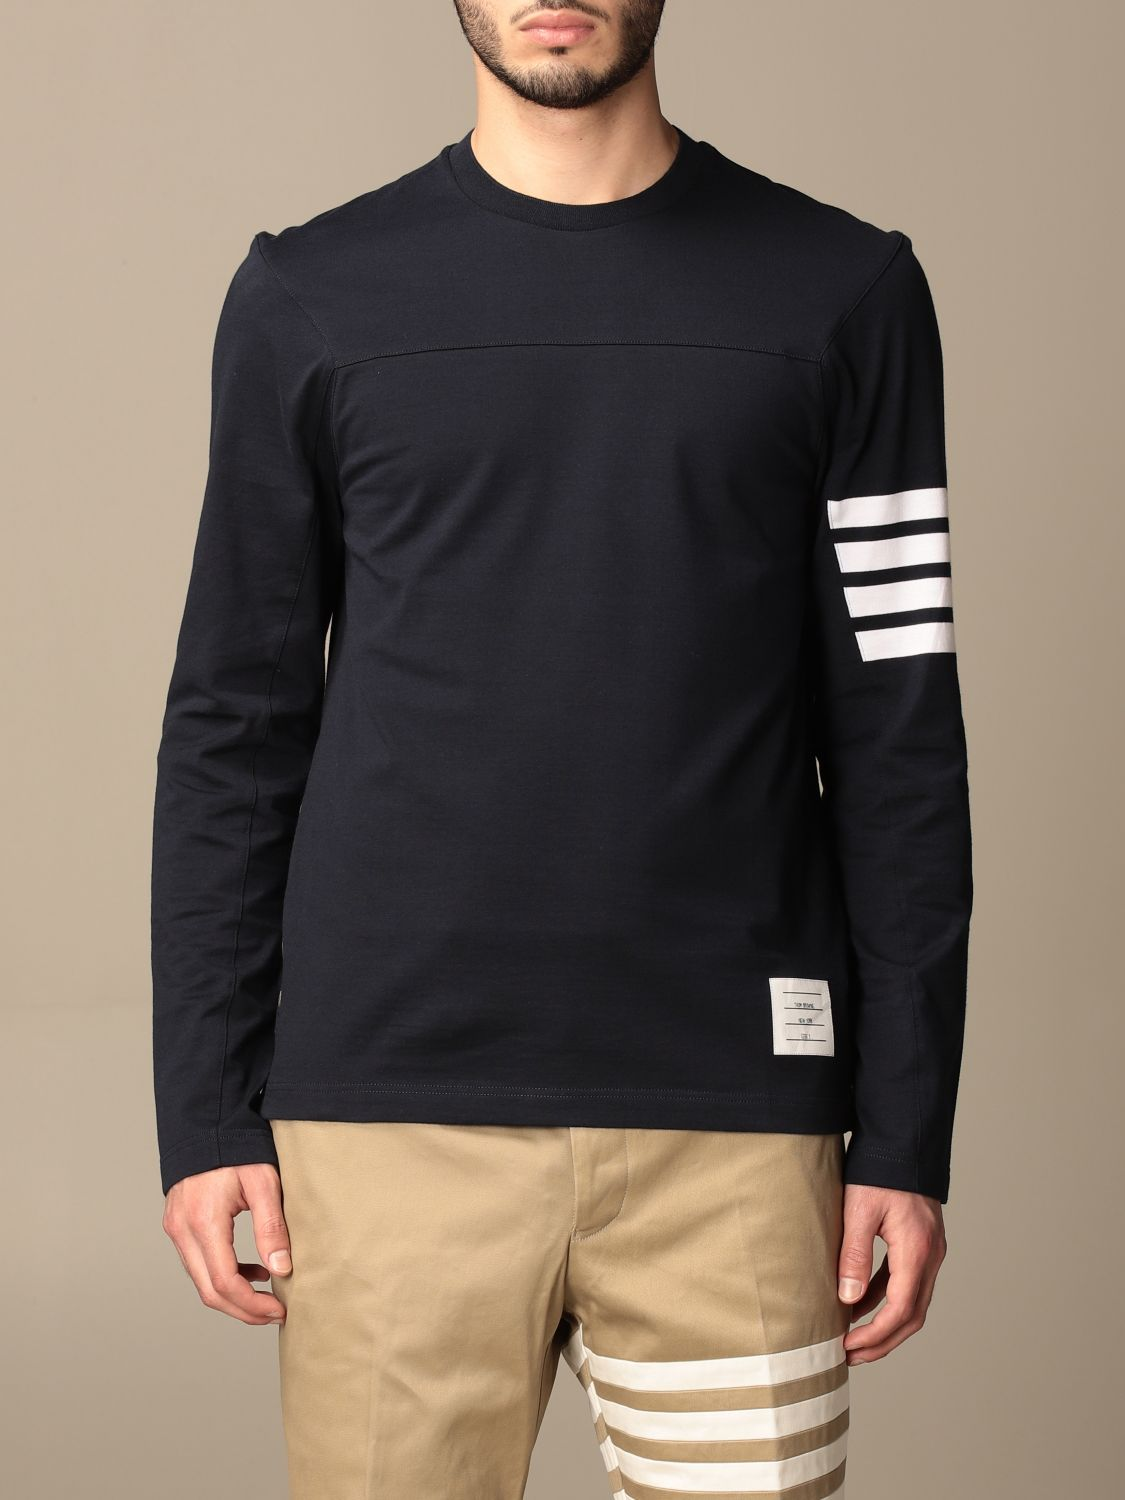 T-shirt Thom Browne: T-shirt Thom Browne in cotone con dettaglio a righe blue navy 1